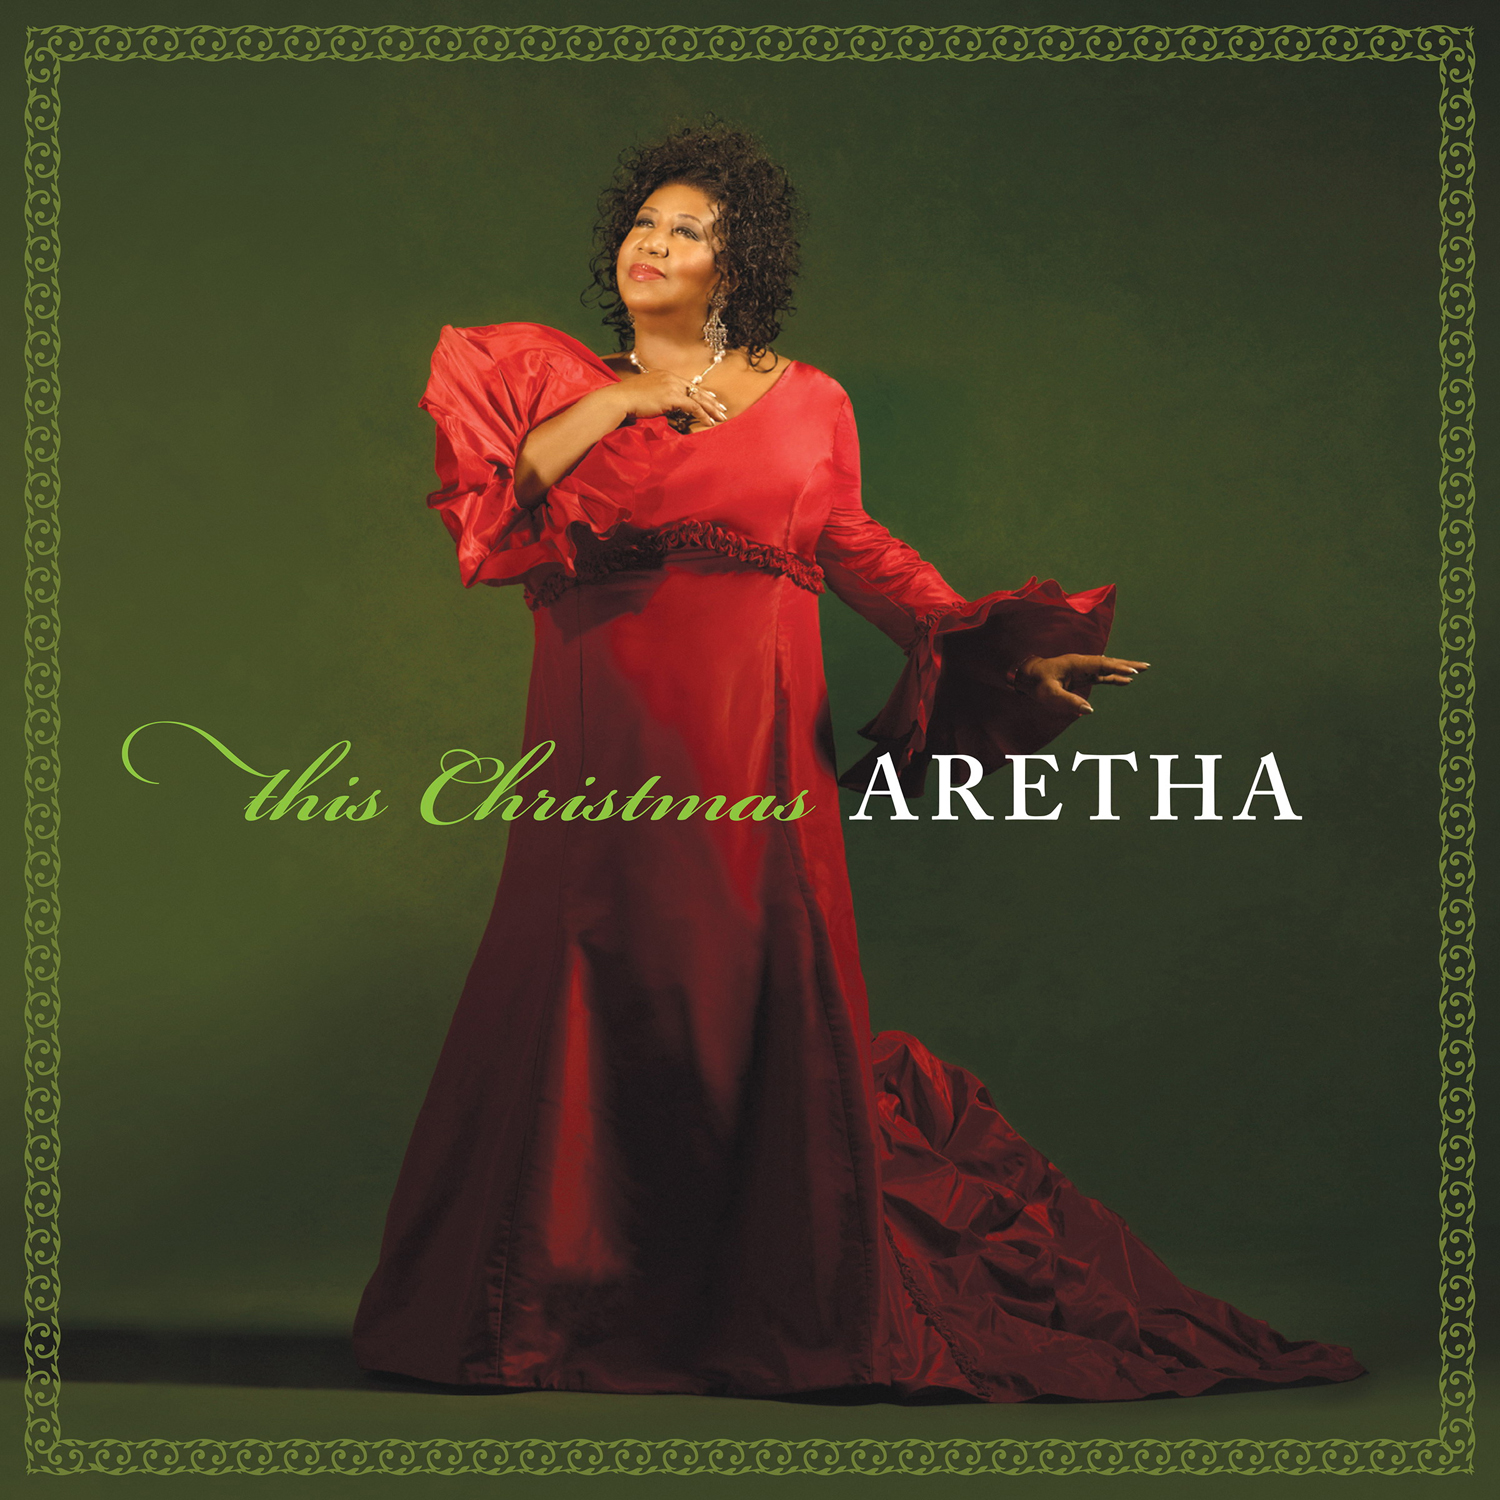 Арета Фрэнклин Aretha Franklin. This Christmas Aretha (LP) цена и фото